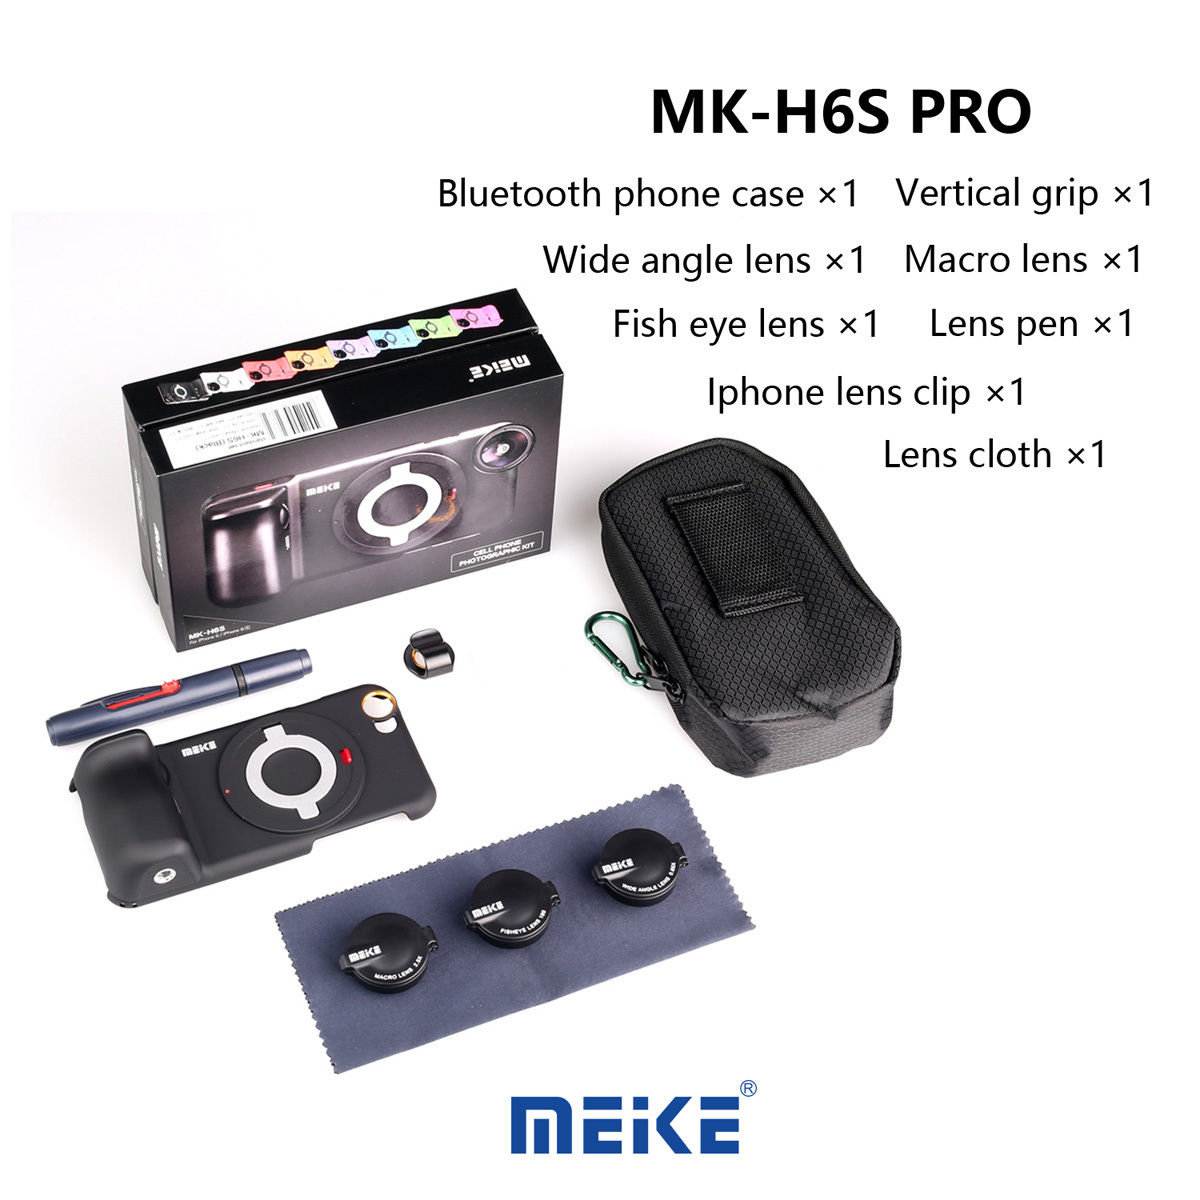 MK-H6S Pro 3in1 Bluetooth phone wide angle lens+fisheye lens+macro lens+case for iphone 6/6s Cell phone Sony ILCE-QX1 led fill in flash light wide angle macro lens for smartphone white